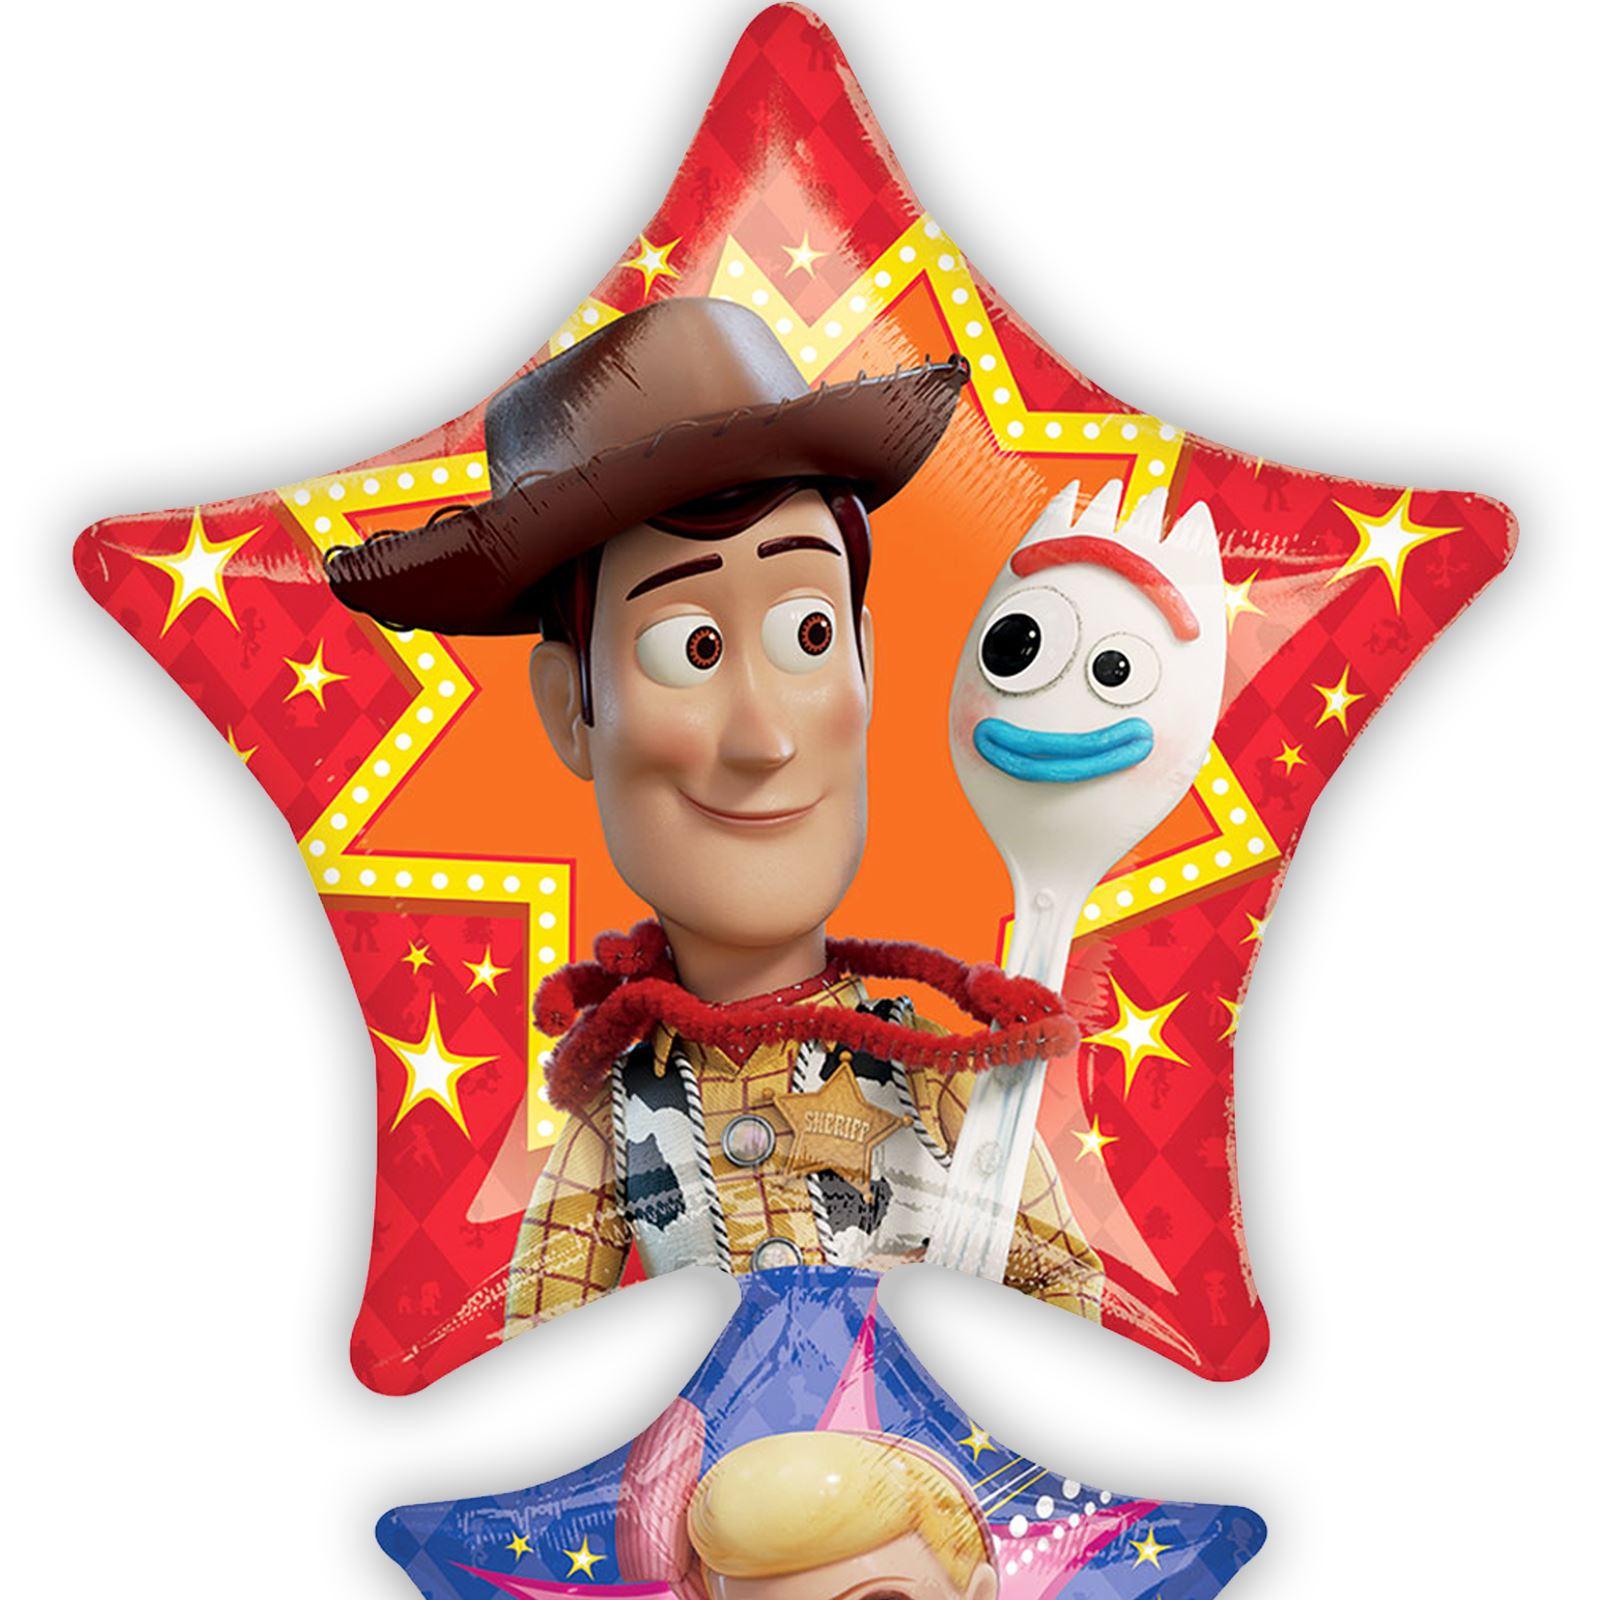 TOY STORY 4 Happy Birthday party supplies dessert cake PAPER PLATES 8pcs FORKY